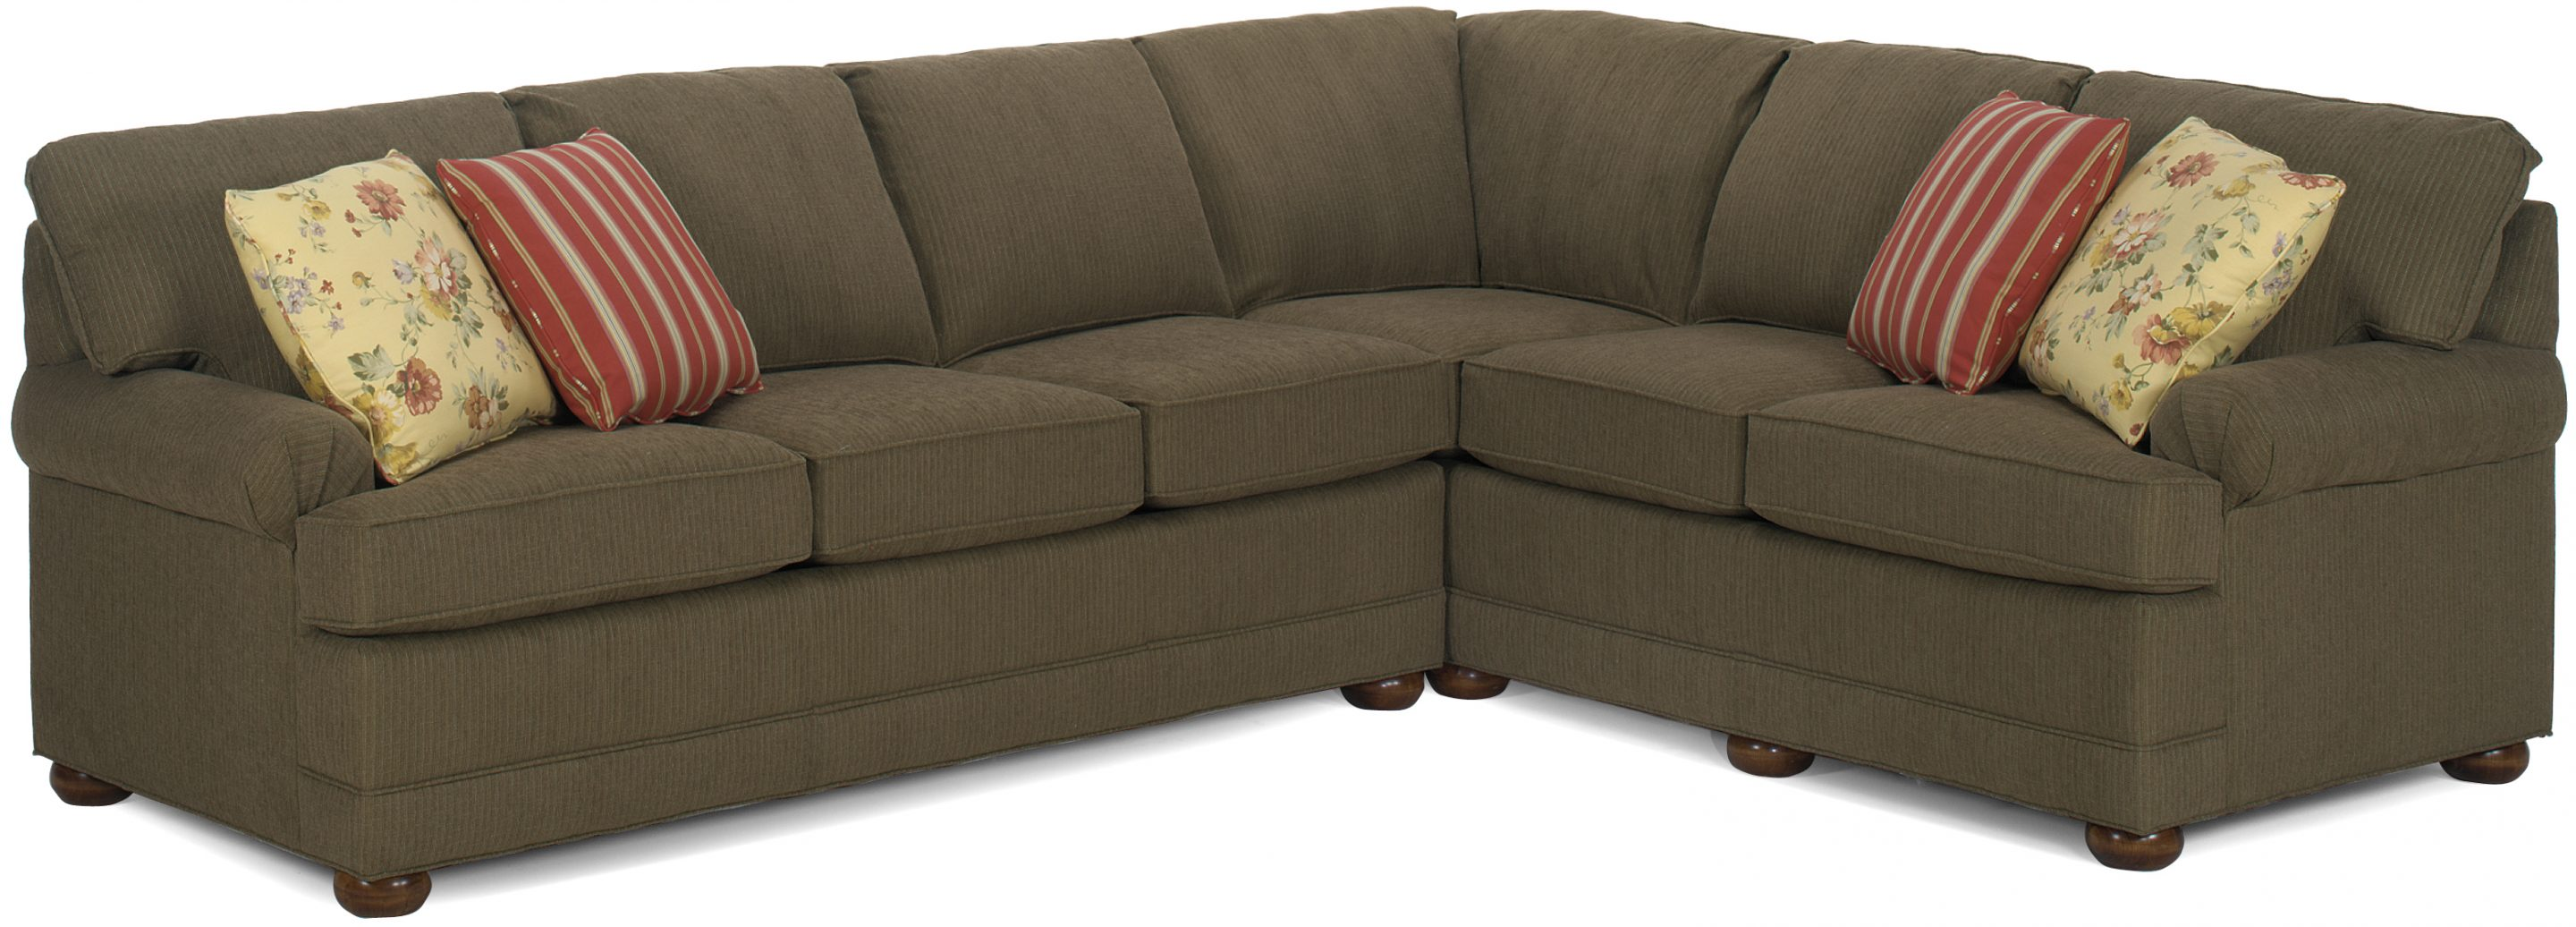 100 8 way hand tied sofa 8 way spring tie at karges for Furniture 8 way hand tied